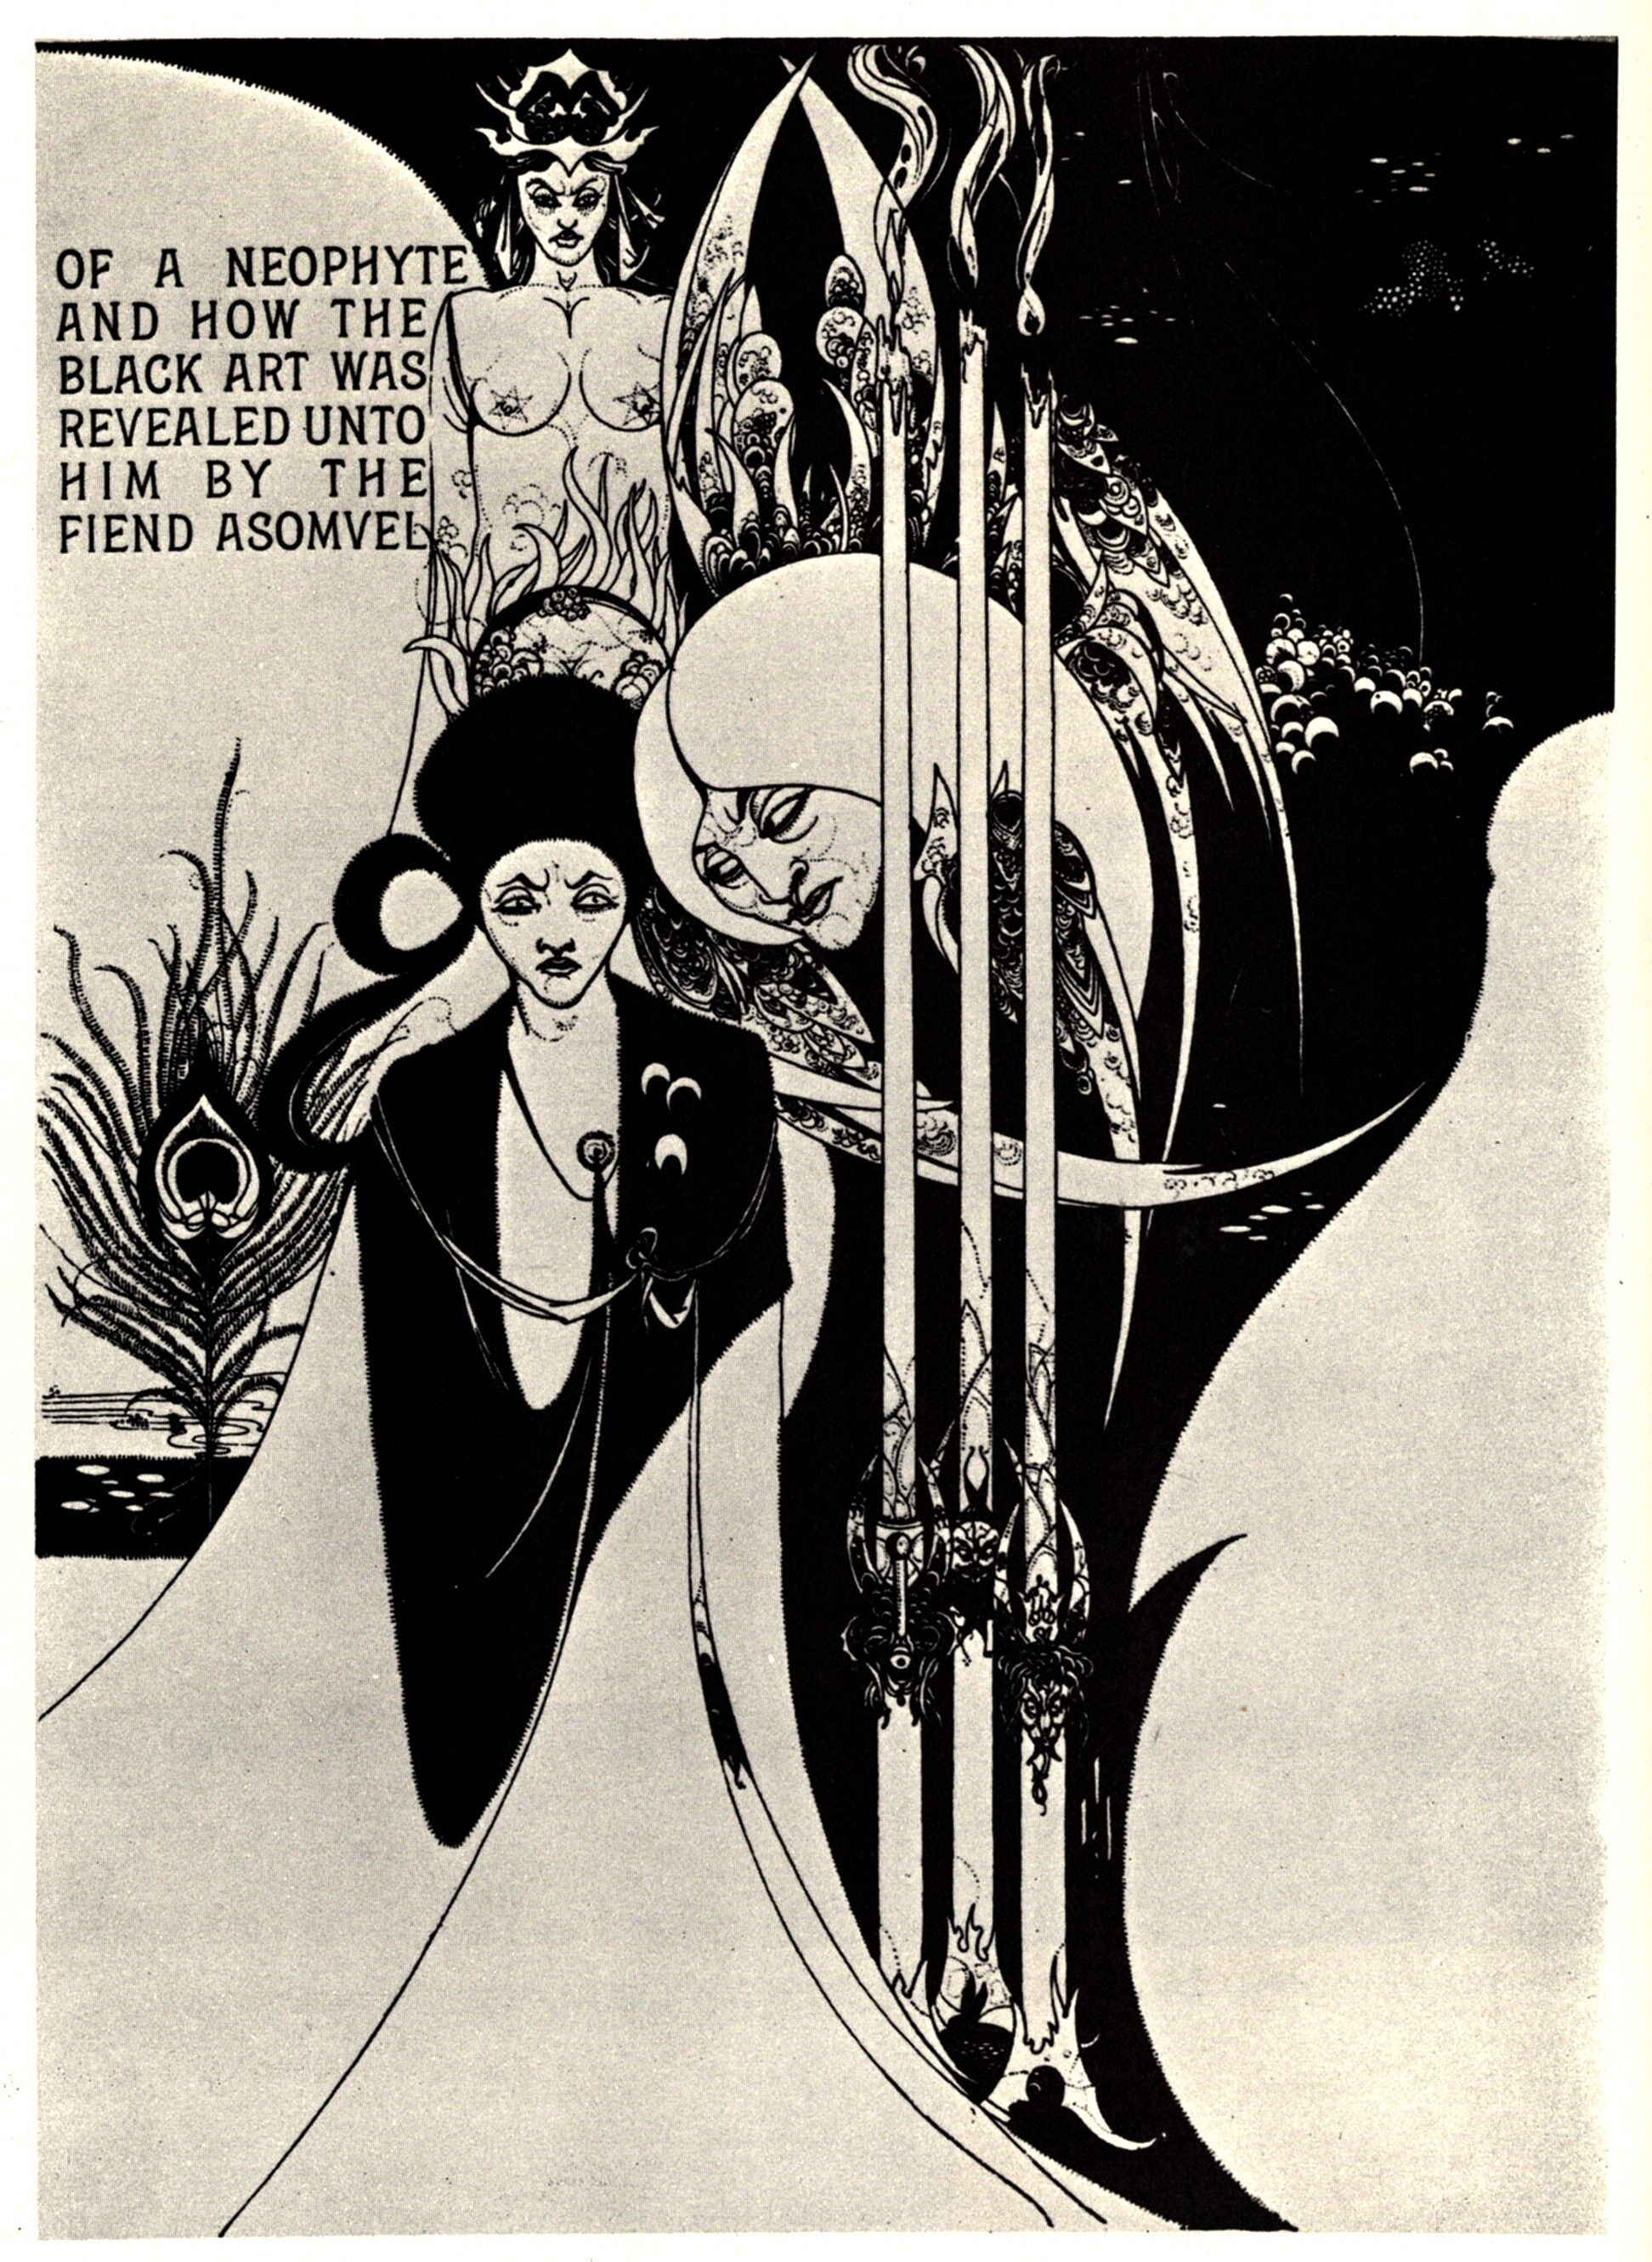 Can anyone tell me about art nouveau? nd if u can also about Aubrey Beardsley..?